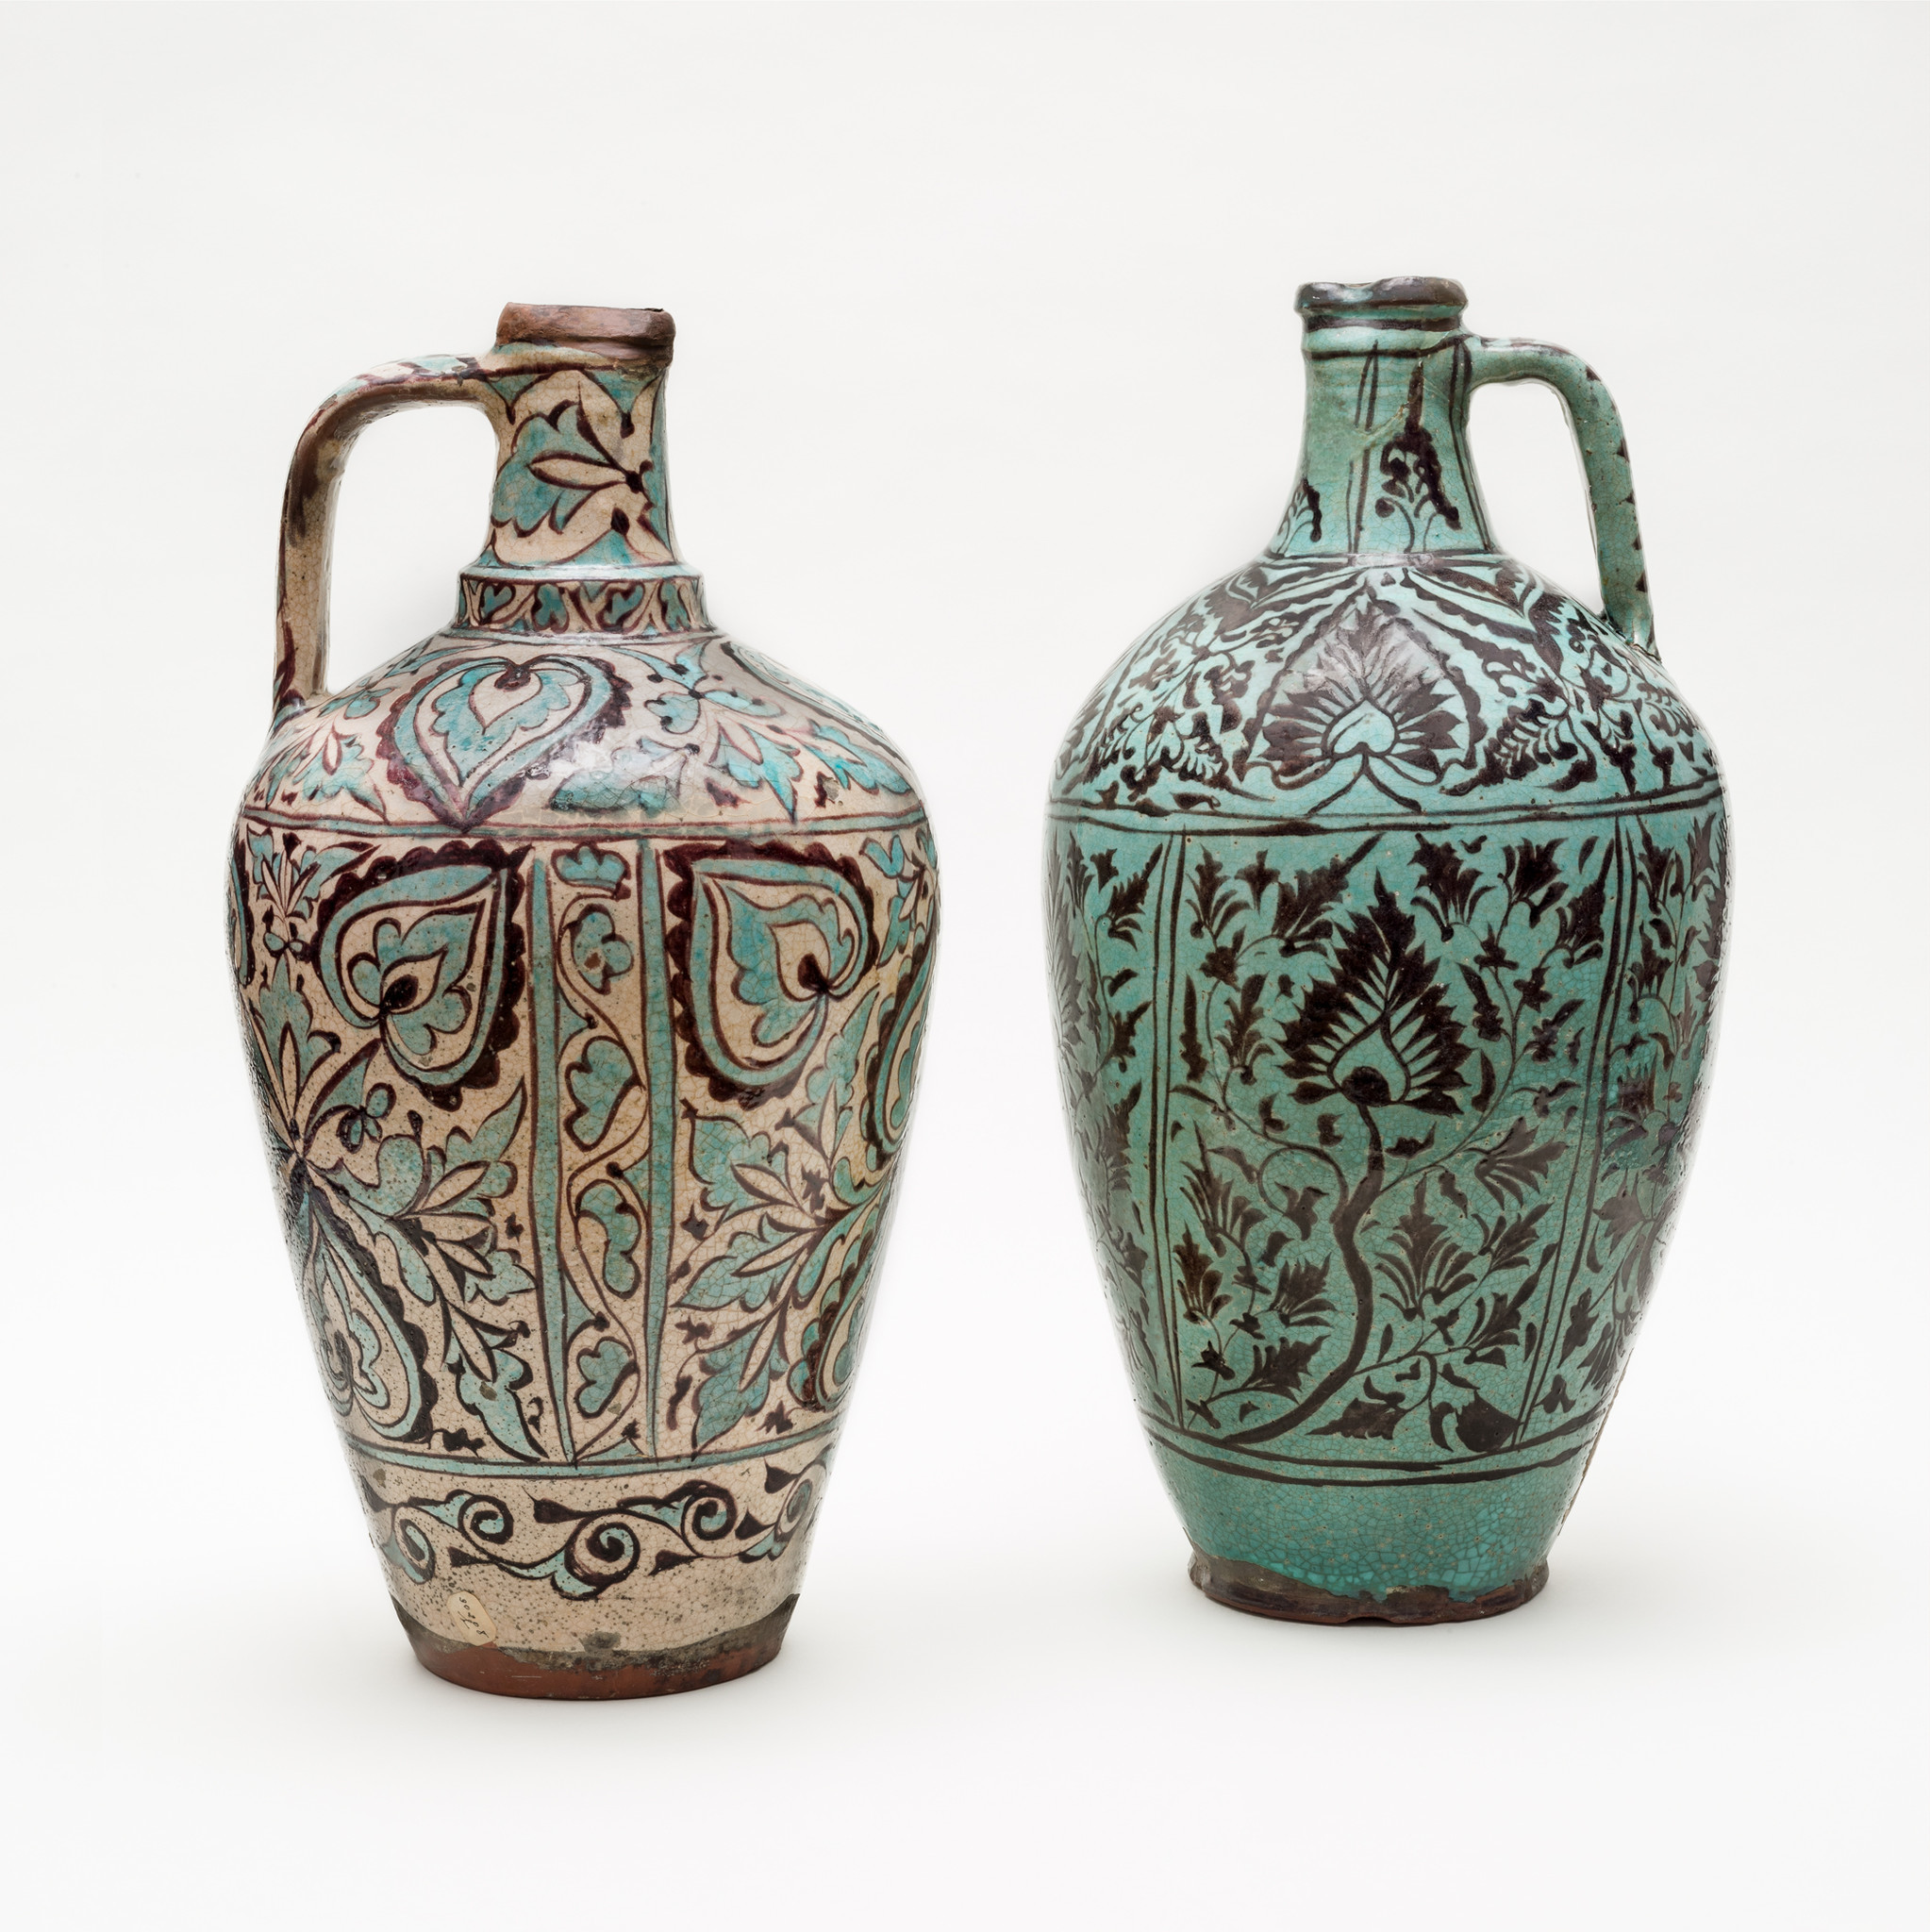 A pair of 15-16th century floral jugs from Iran